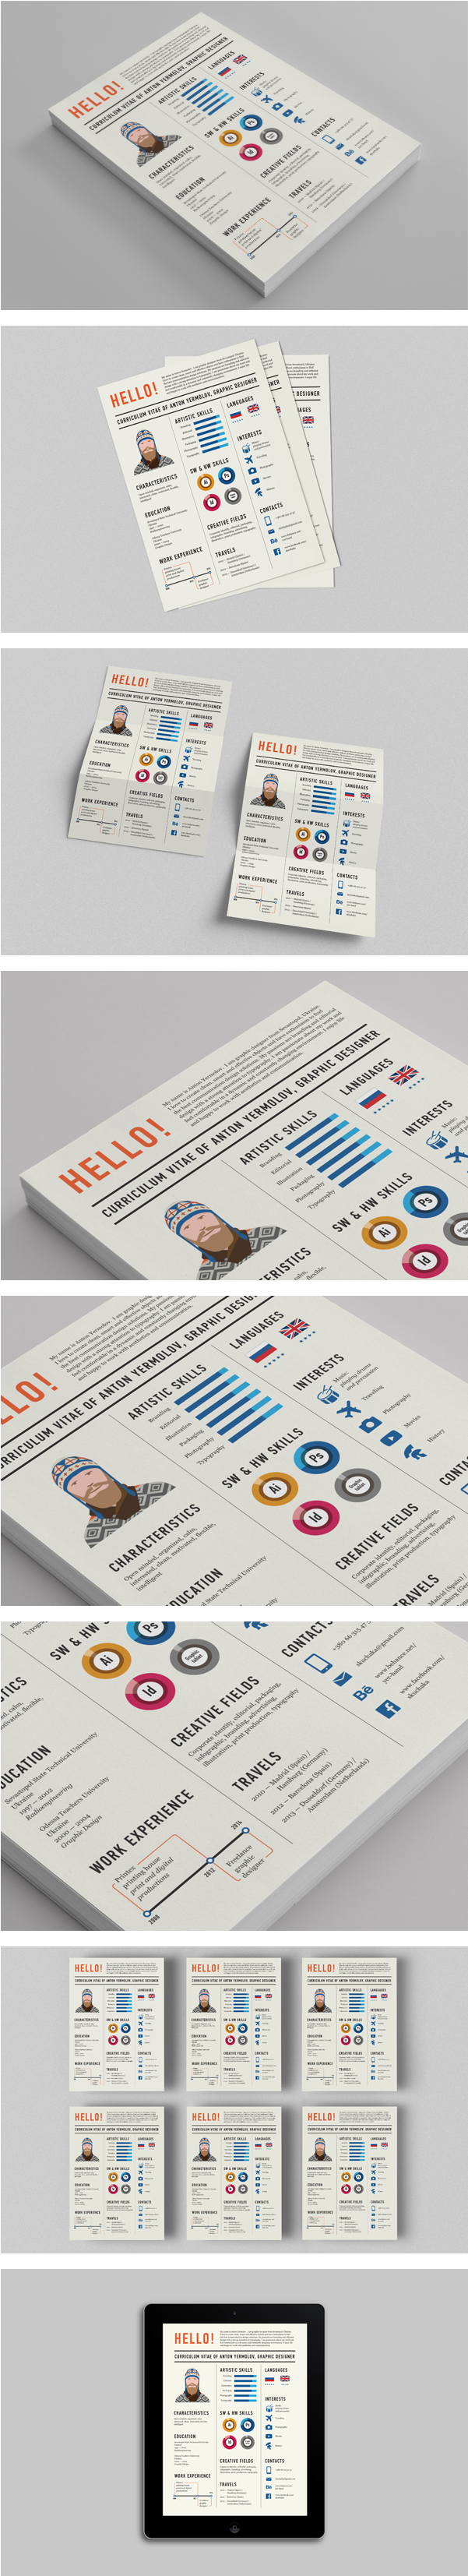 Newspaper Resume Design by Anton Yermolov